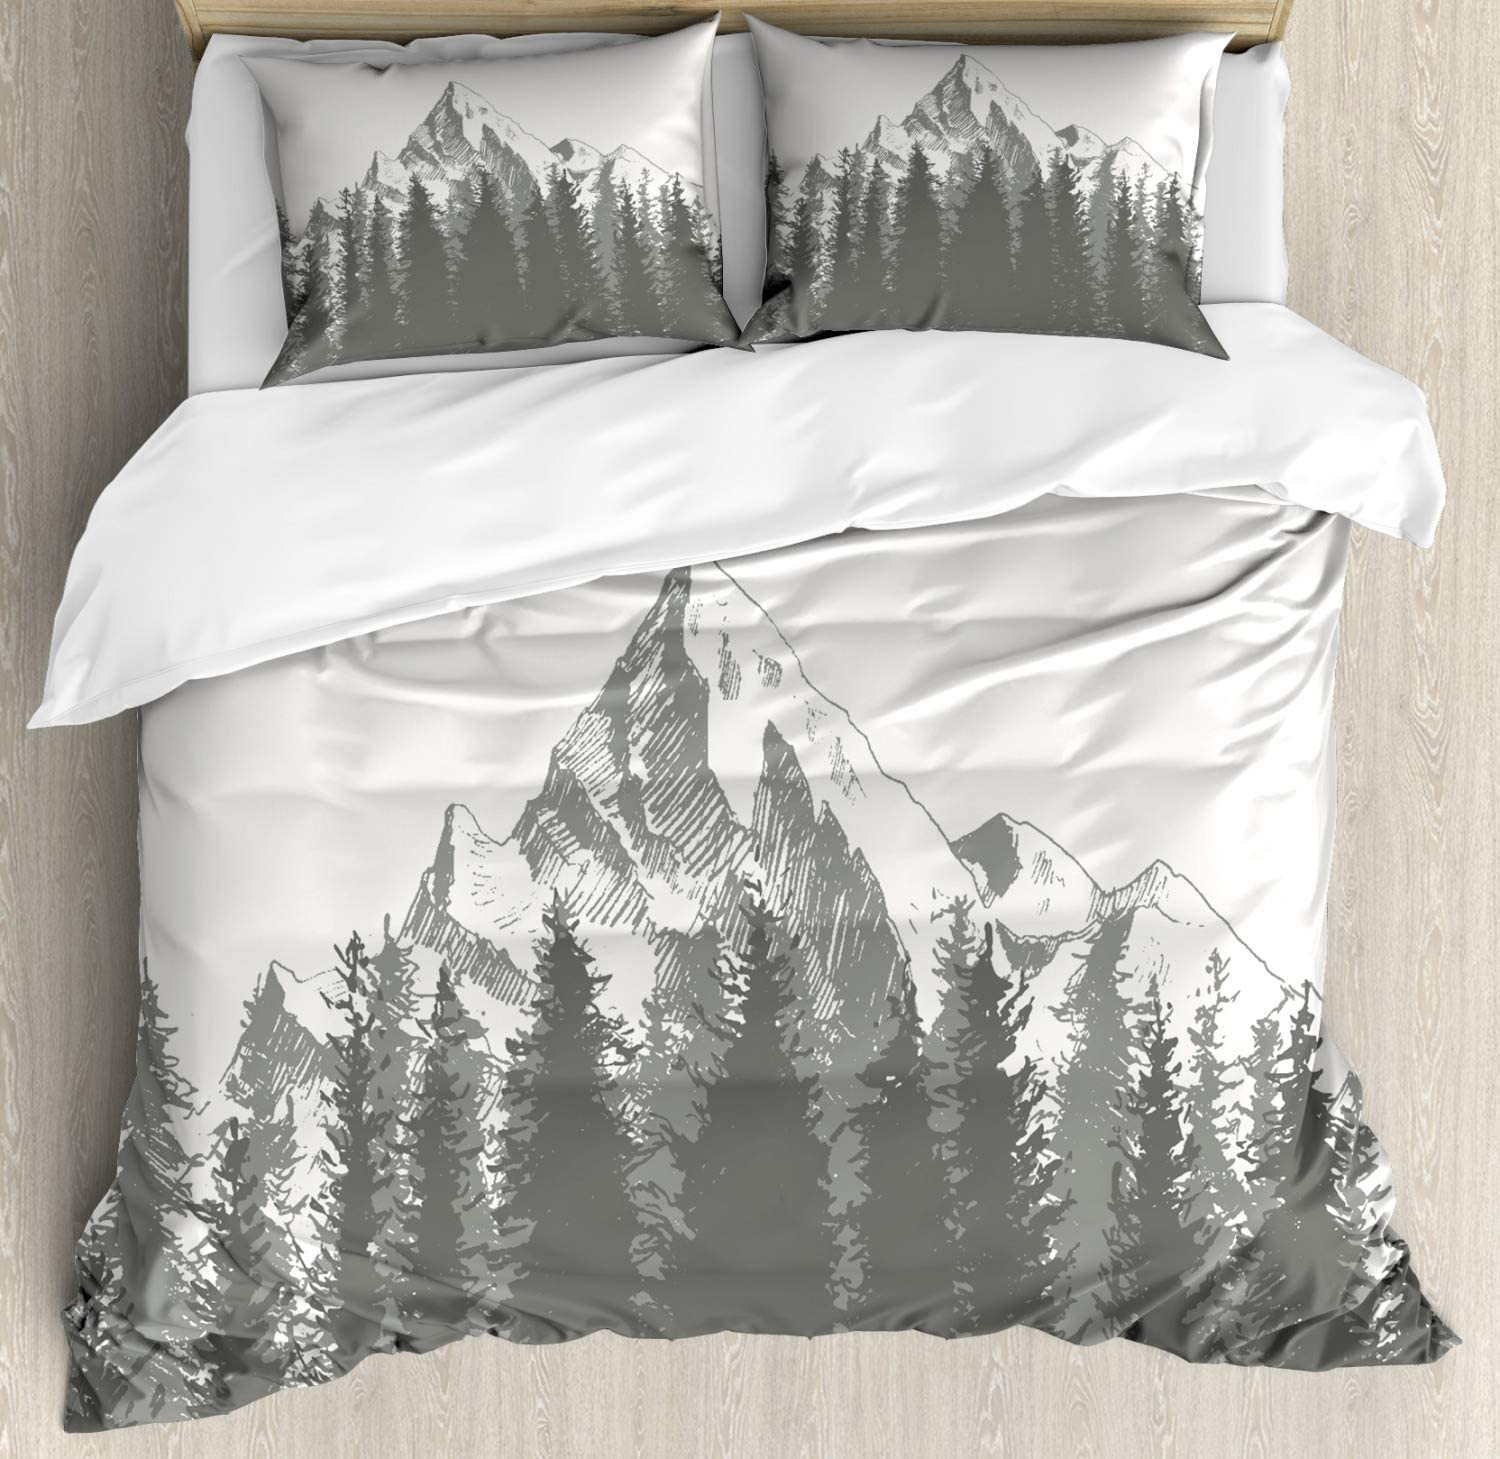 Ambesonne Prehistoric Duvet Cover Set, Mountain Fir Forest and Arrow Folk Style Retro Print, Decorative 3 Piece Bedding Set with 2 Pillow Shams, King Size, Dimgrey